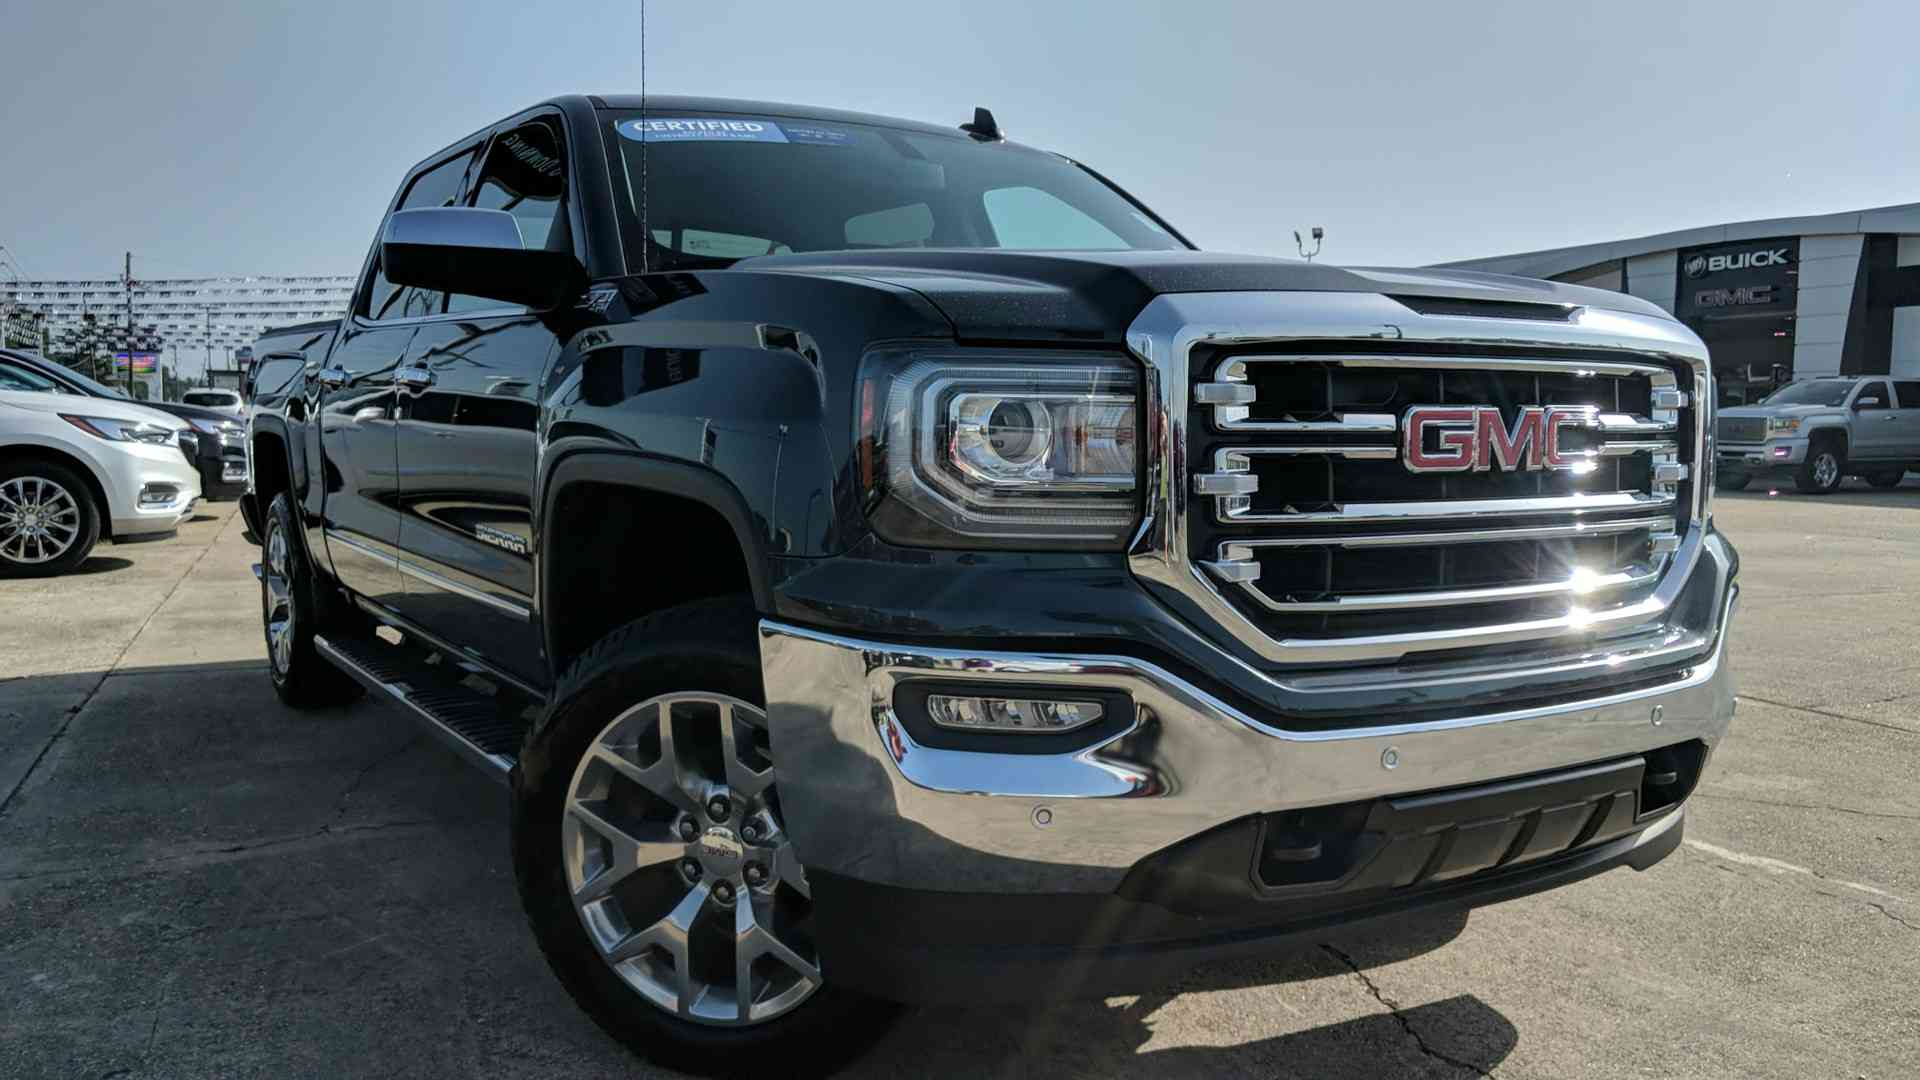 Used Gmc Sierra For Sale >> Gonzales Used Gmc Sierra 1500 Vehicles For Sale